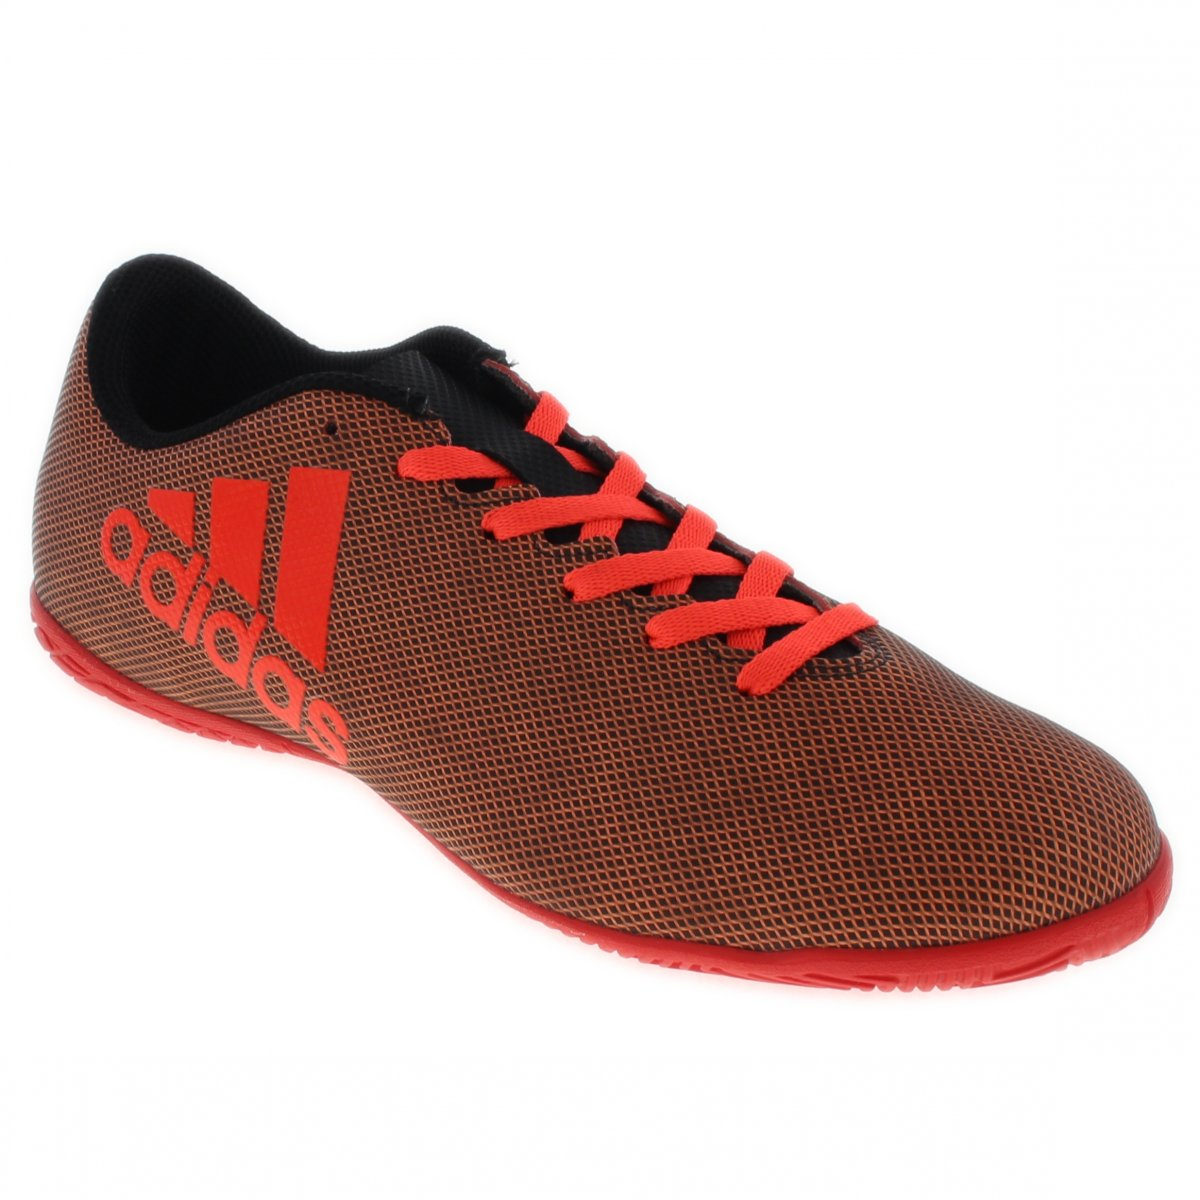 6a8023d98d43 Tenis Adidas x 17.4 in